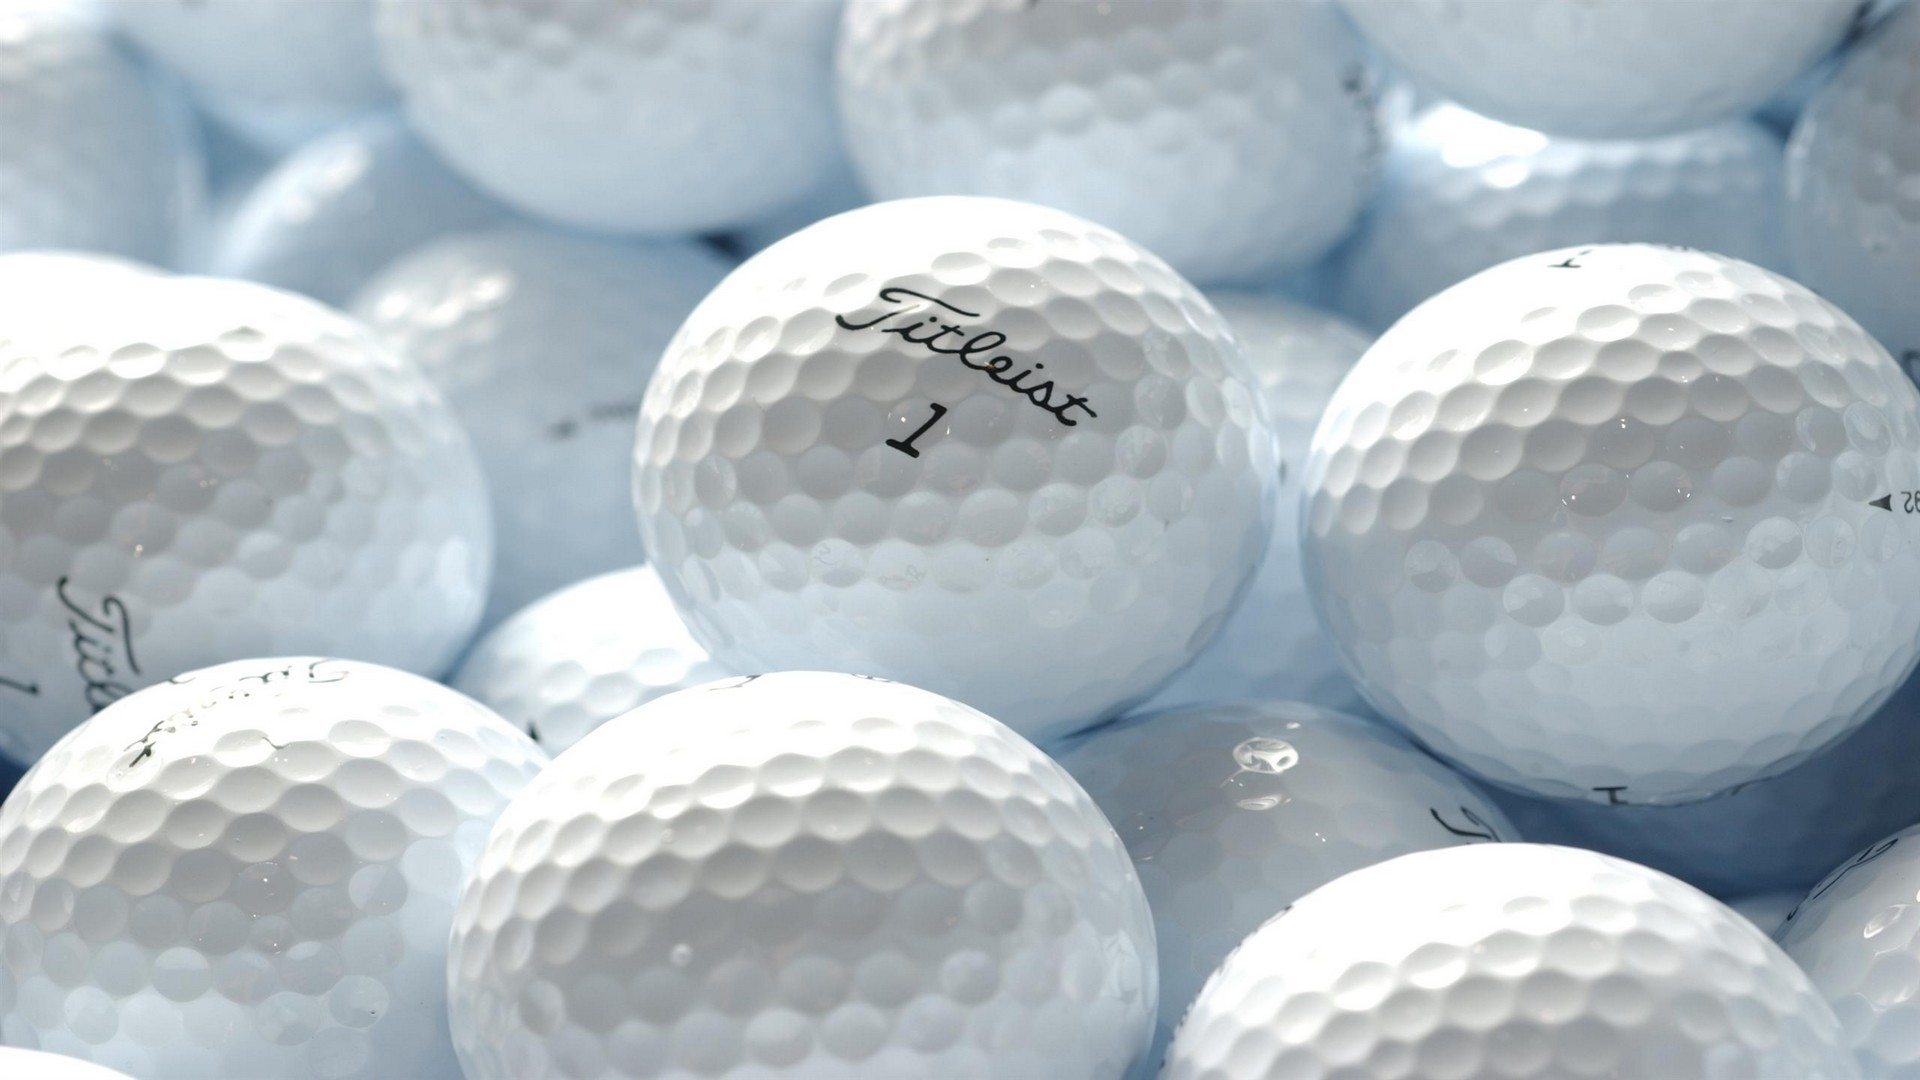 GOlf-ball-hd-wallpaper.jpg